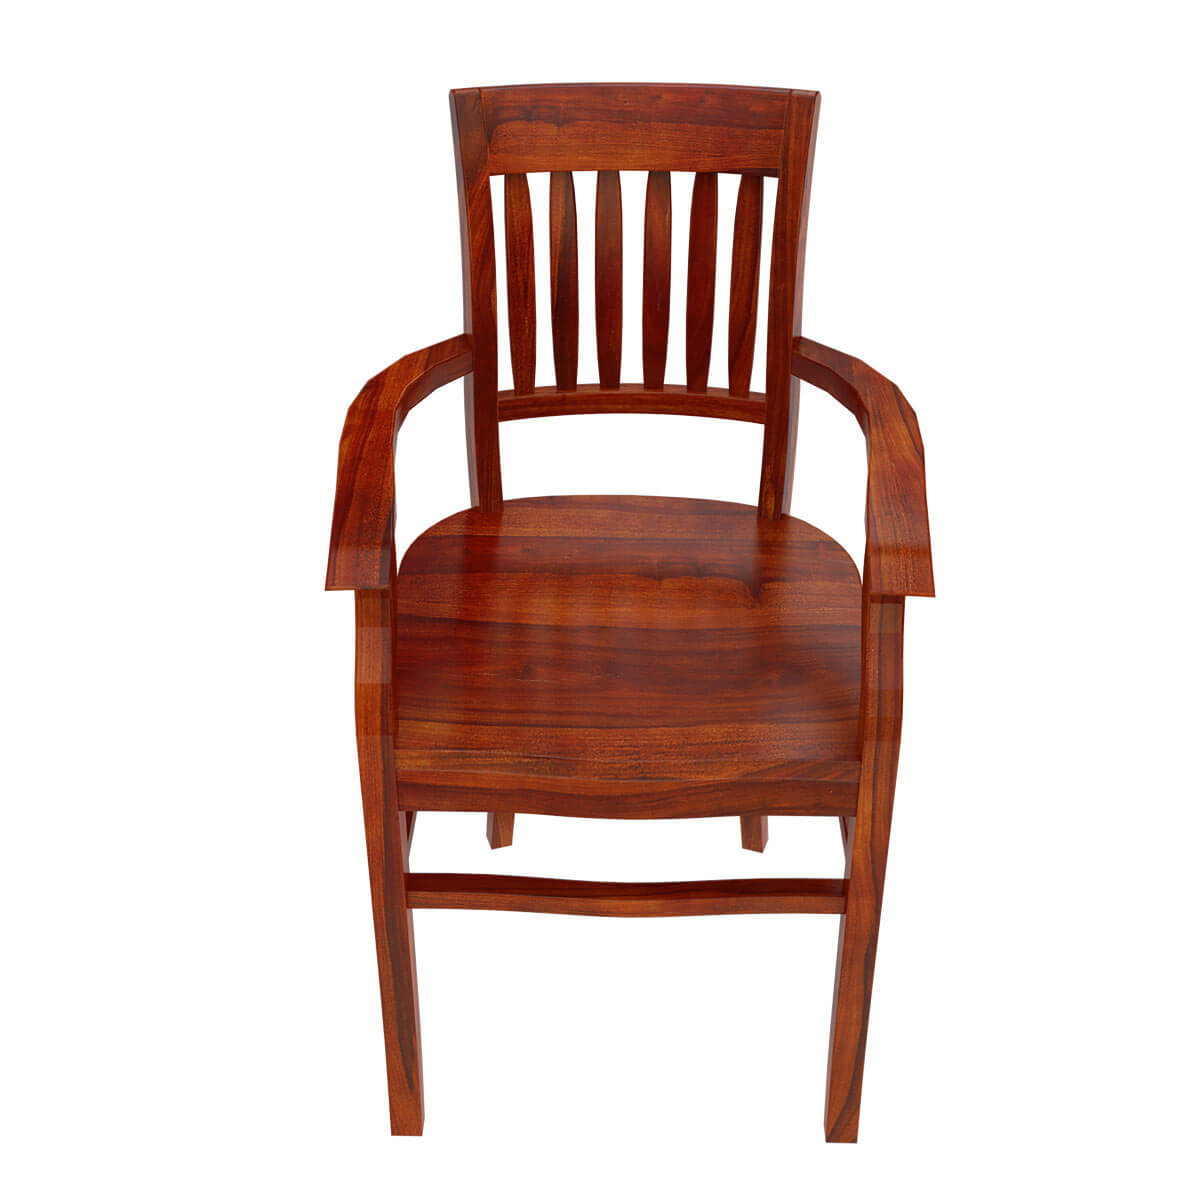 Wood Dining Chairs With Arms ~ Siena rustic solid wood arm dining chair